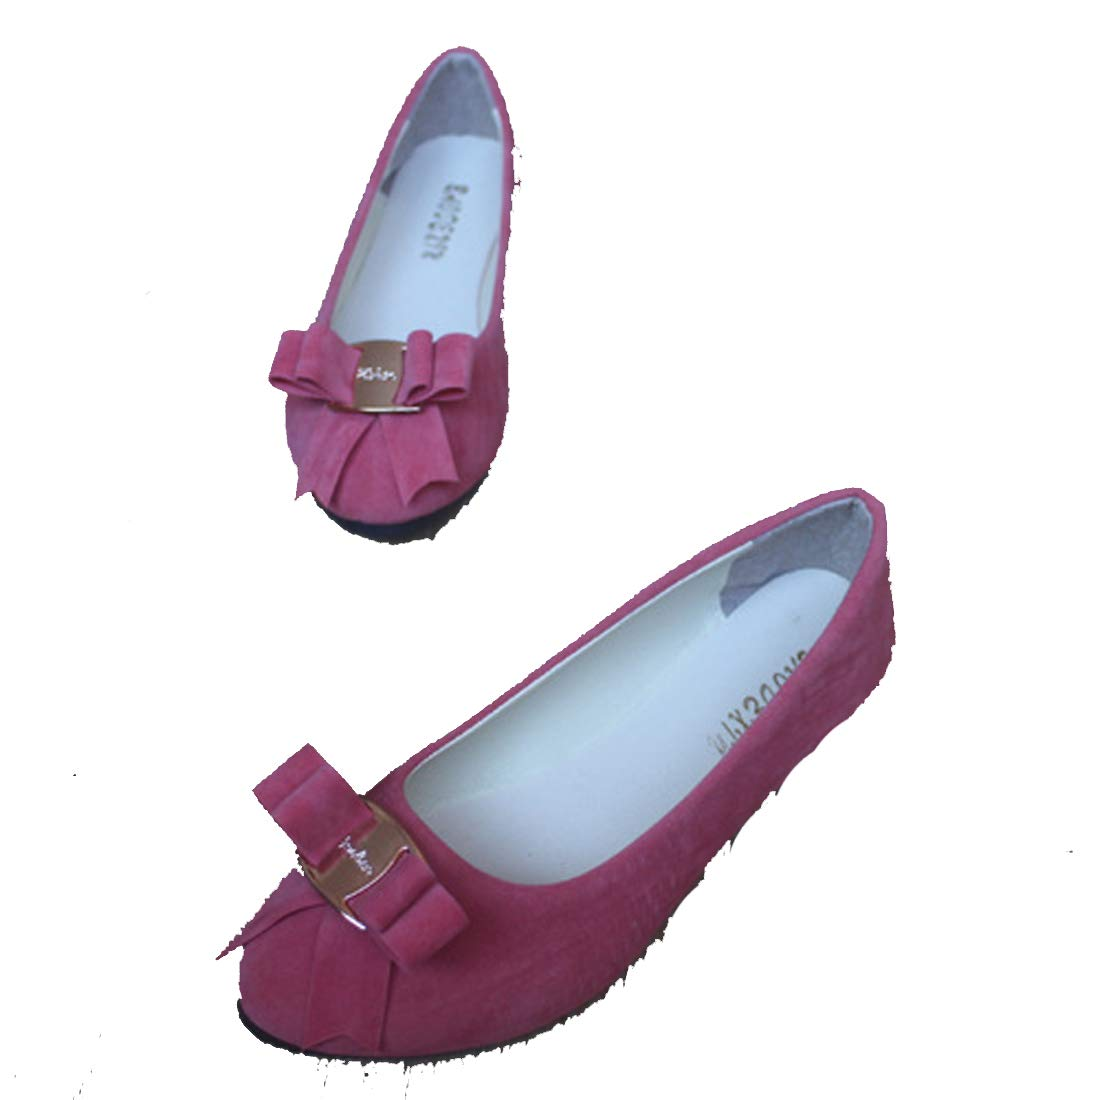 New Womens Ladies Bow Slip On Ballerina Loafers Dolly Pumps Ballet Shoes Sizes